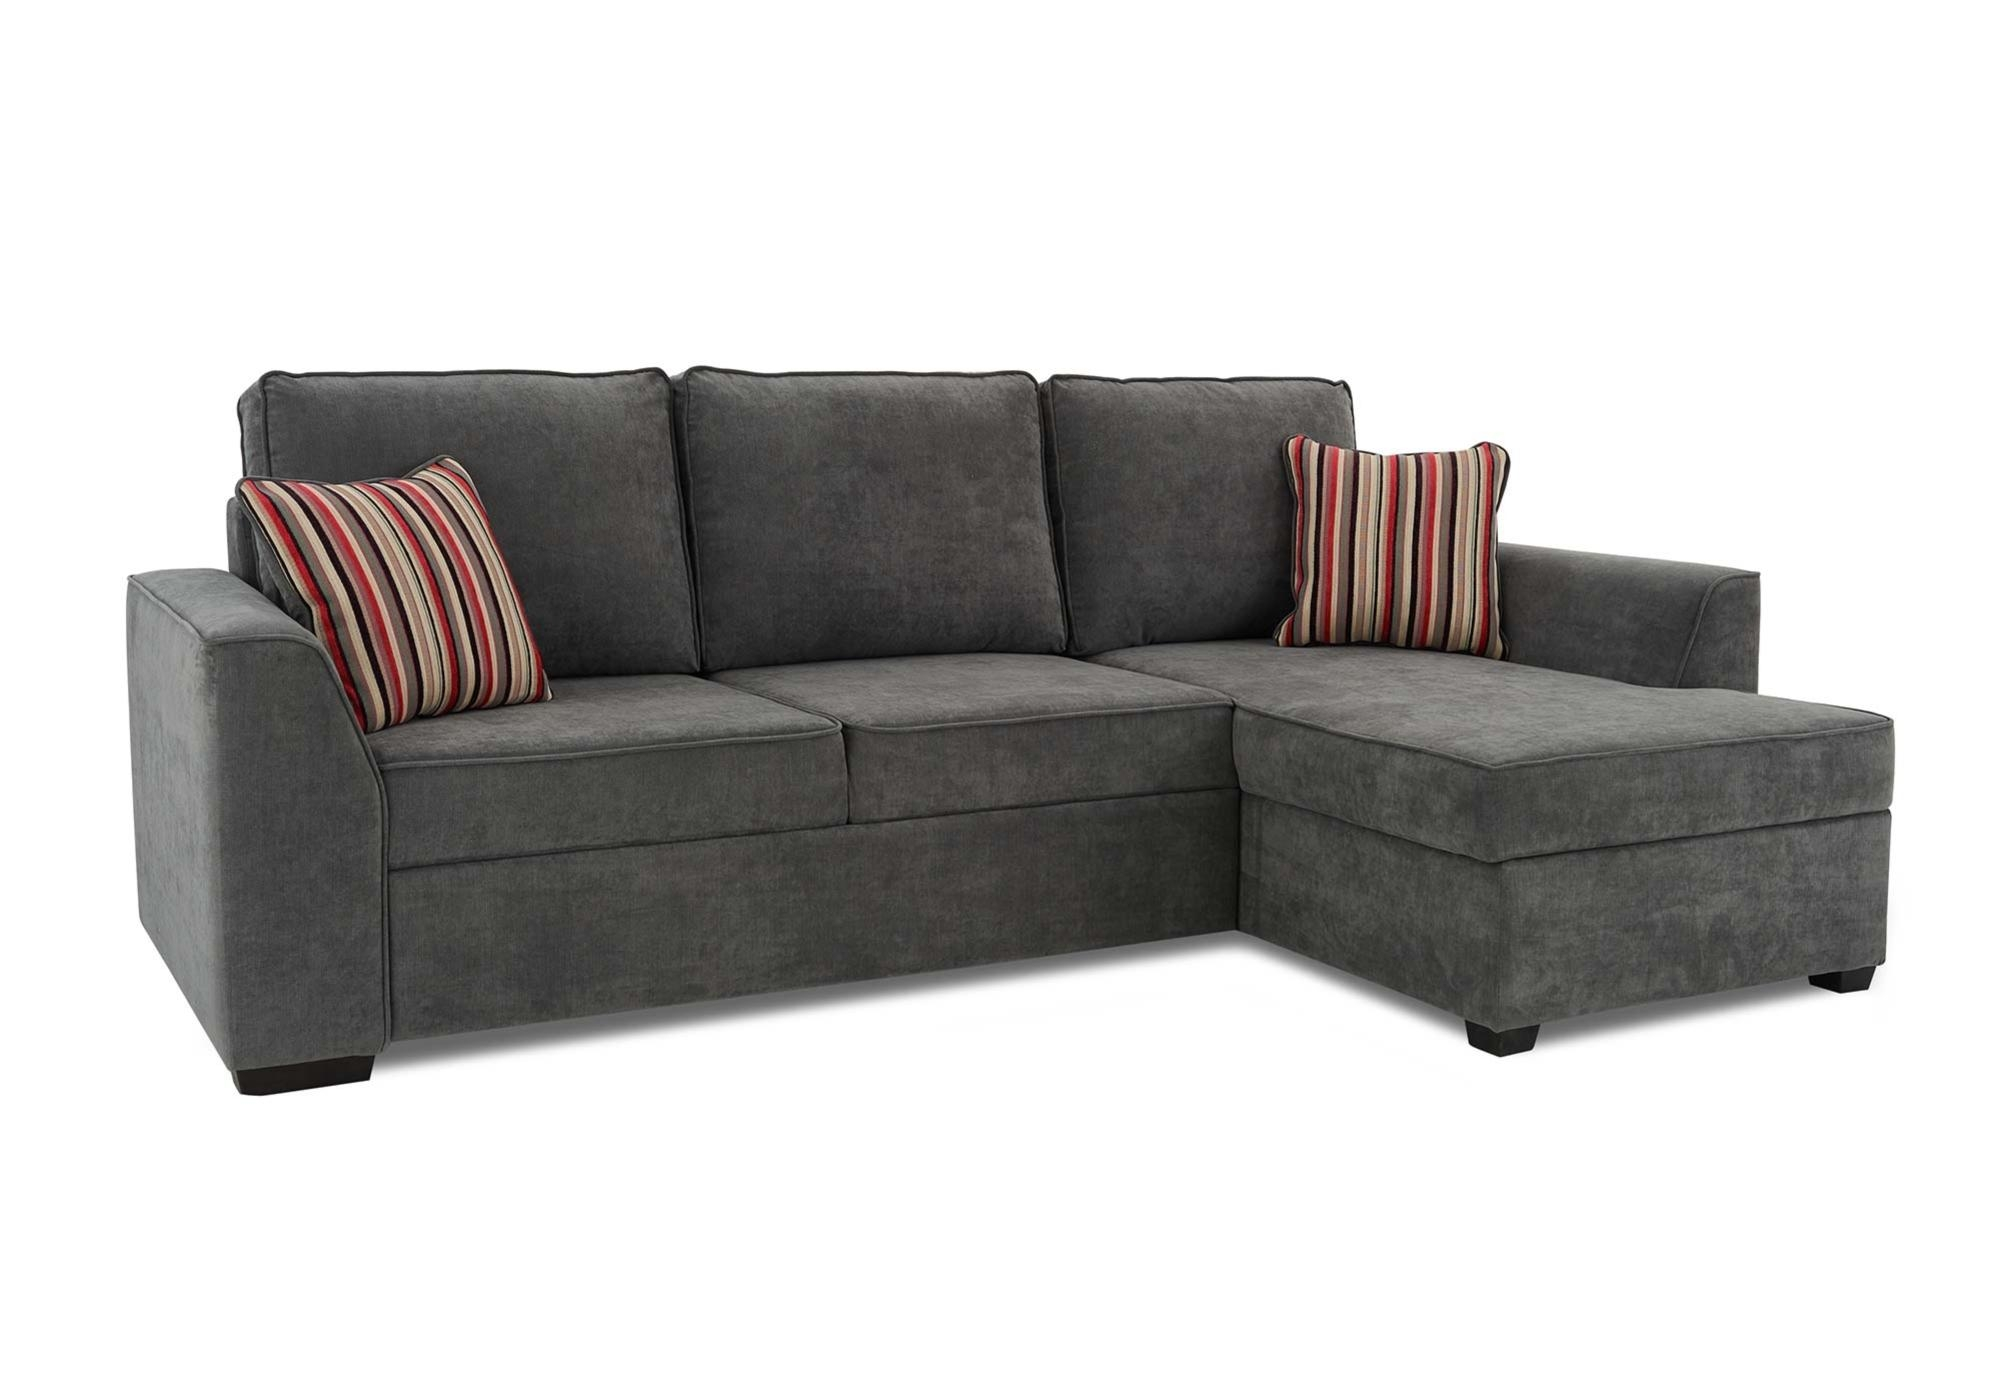 Beautiful Sofa Bed With Storage Chaise Awesome S11 Hometosoucom L With Chaise Sofa Beds With Storage (View 2 of 20)